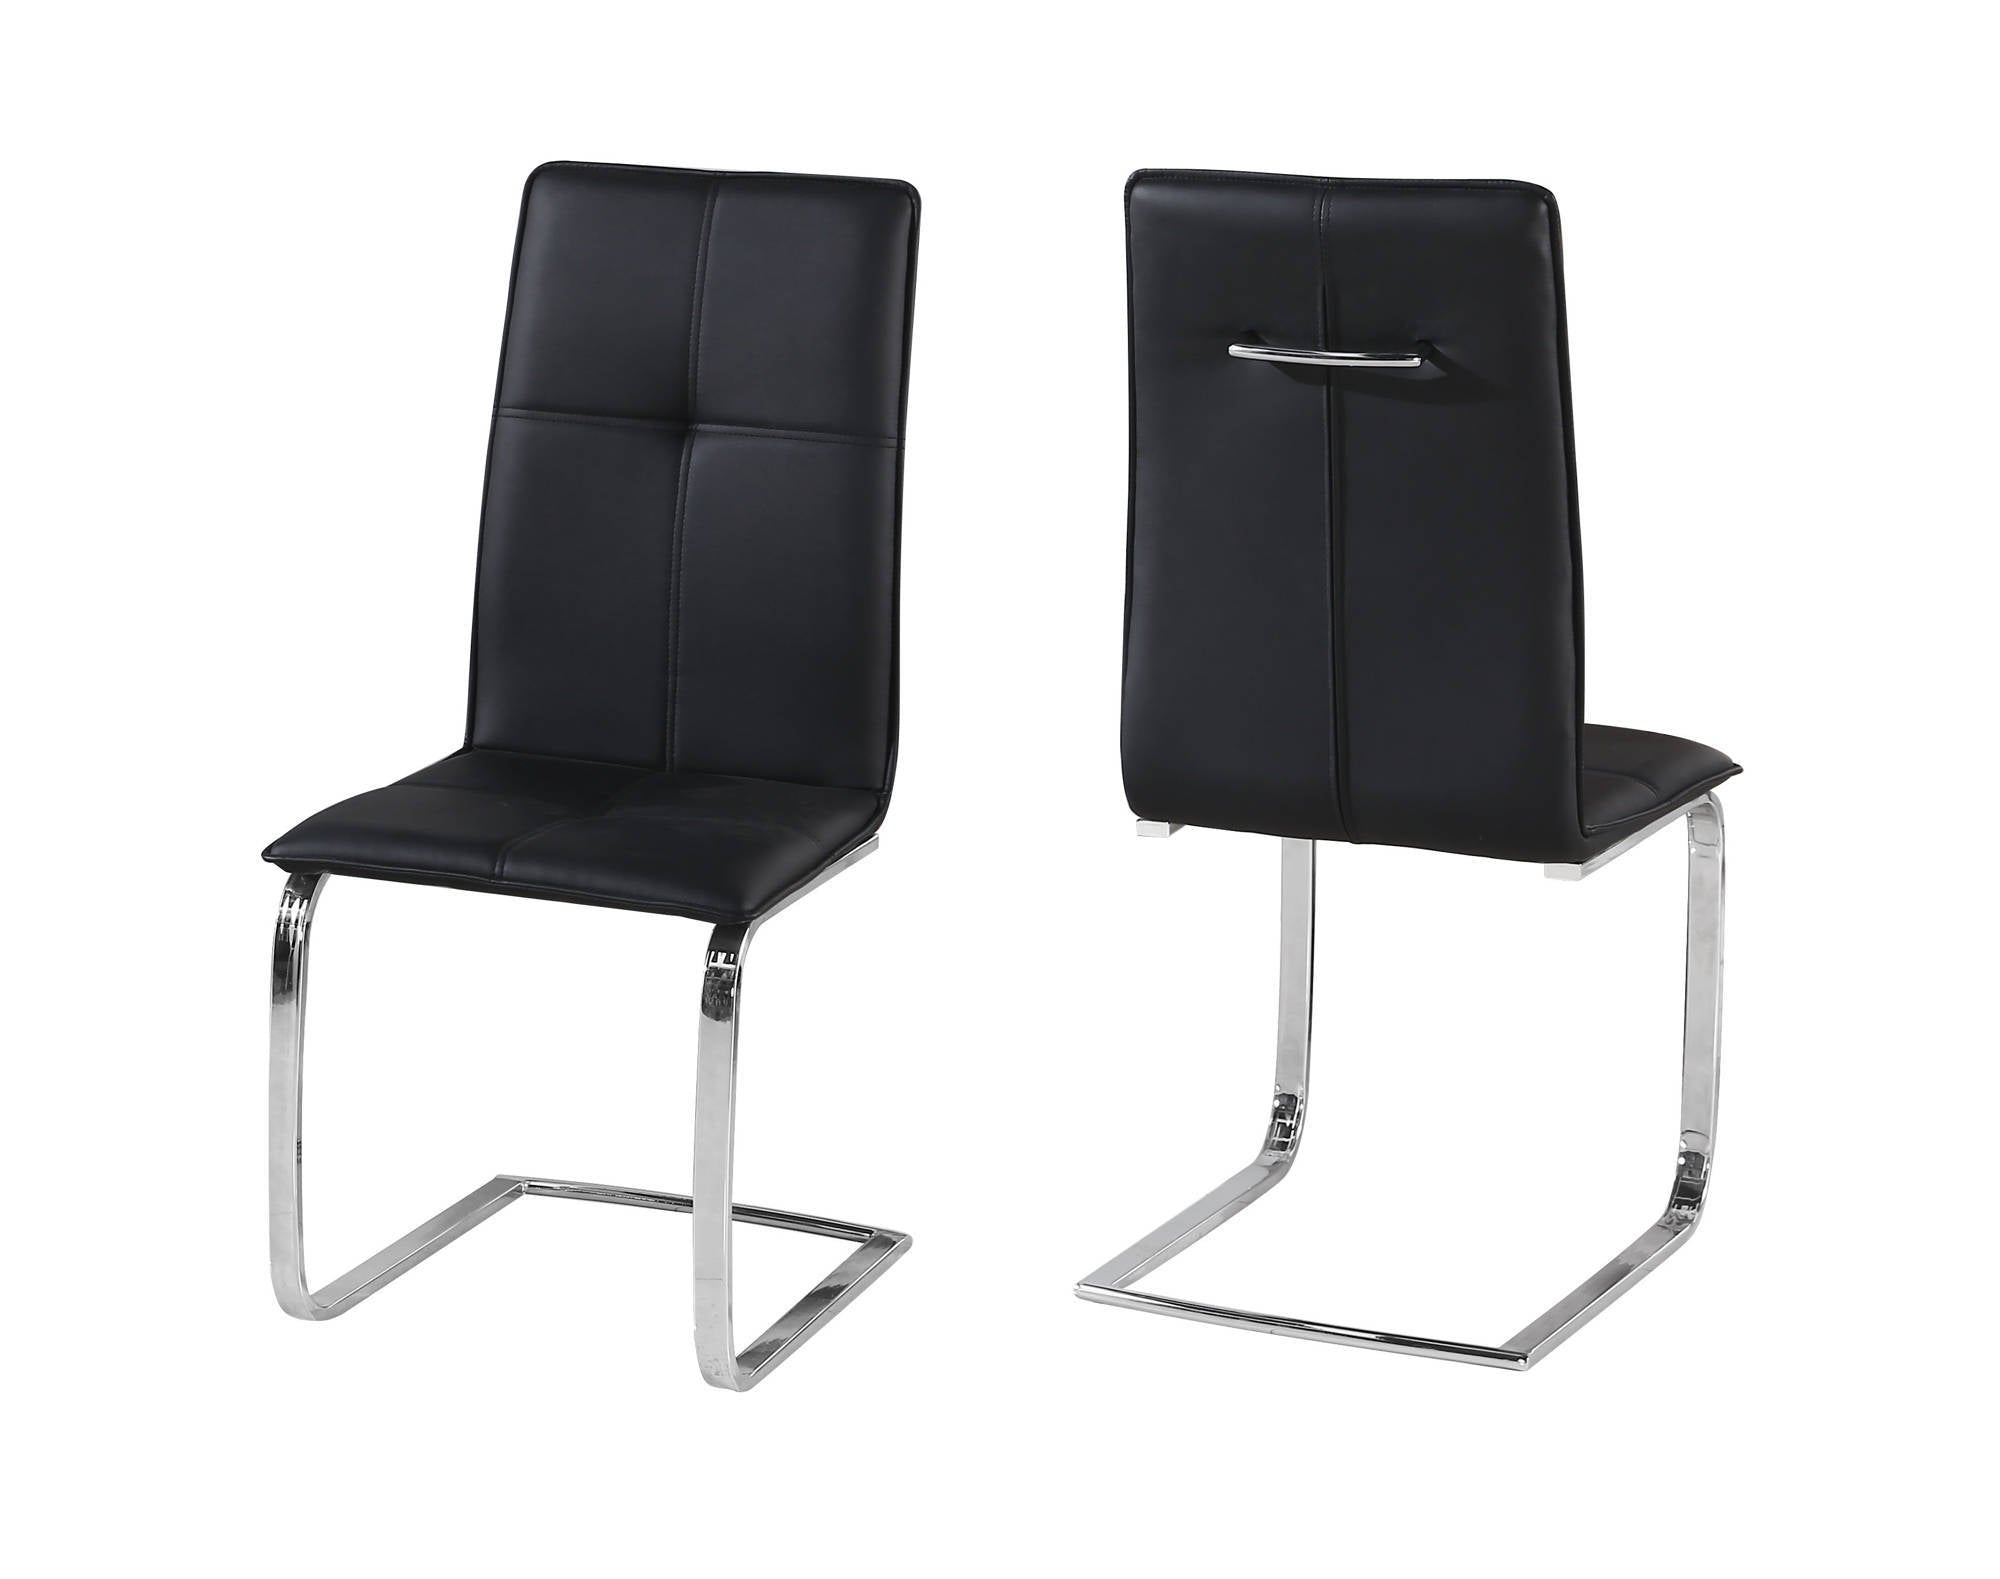 Oeuvre Dining Chairs in Black